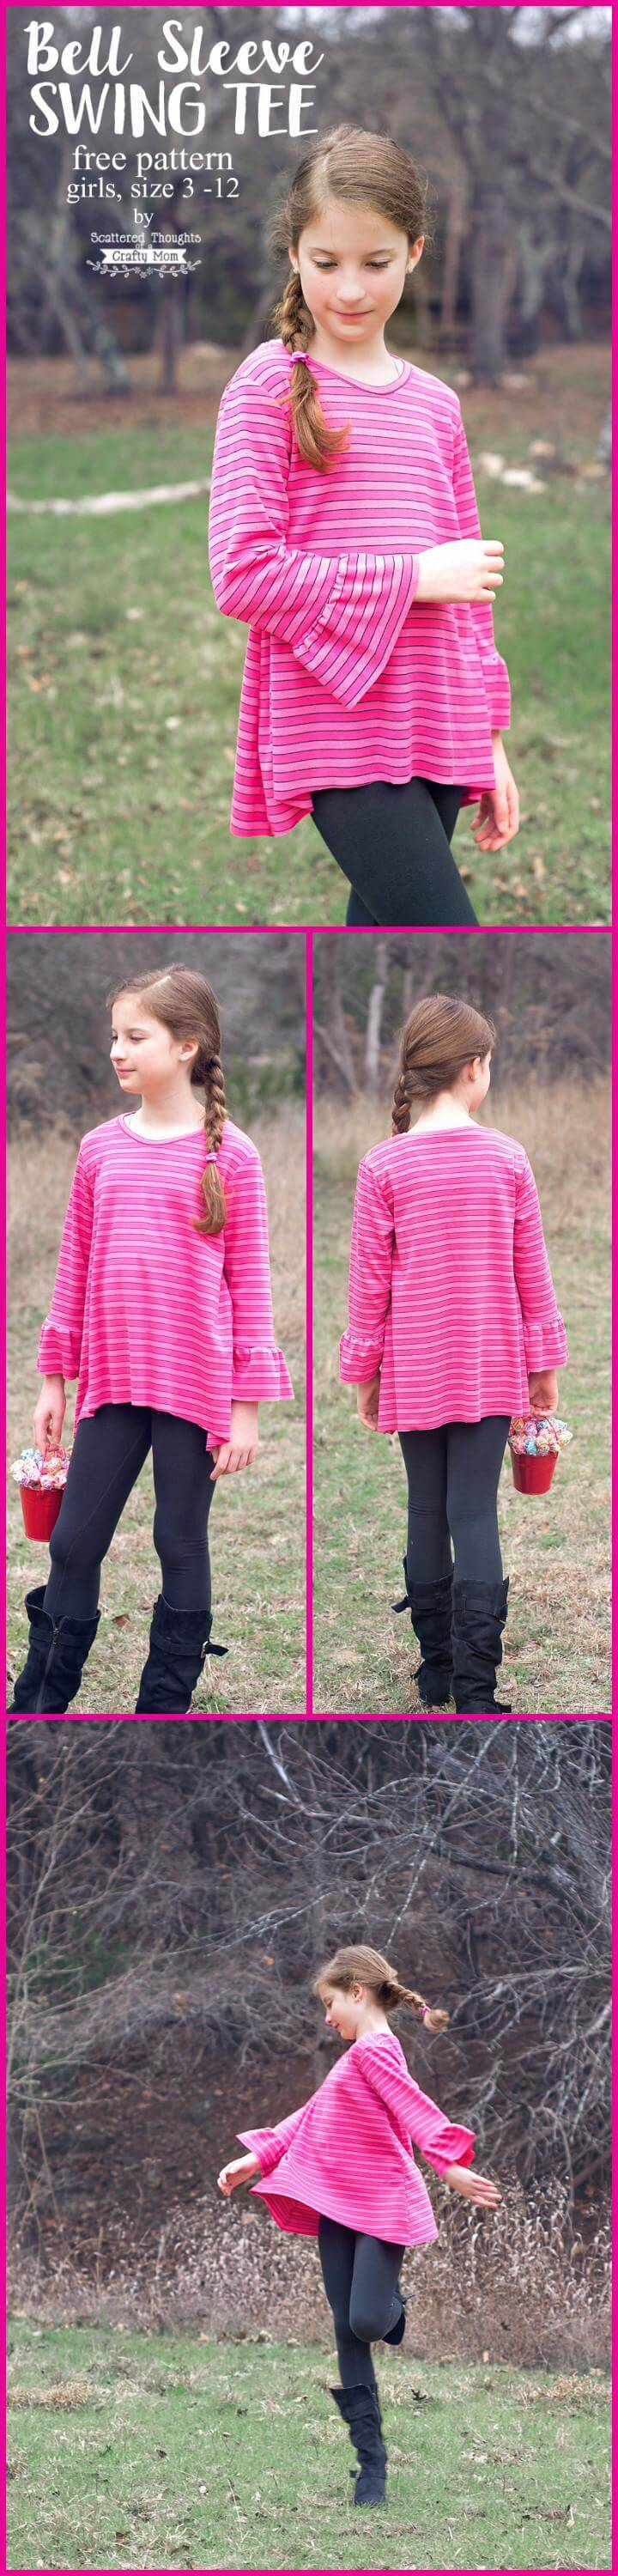 easy bell sleeve girl's tee pattern and tutorial